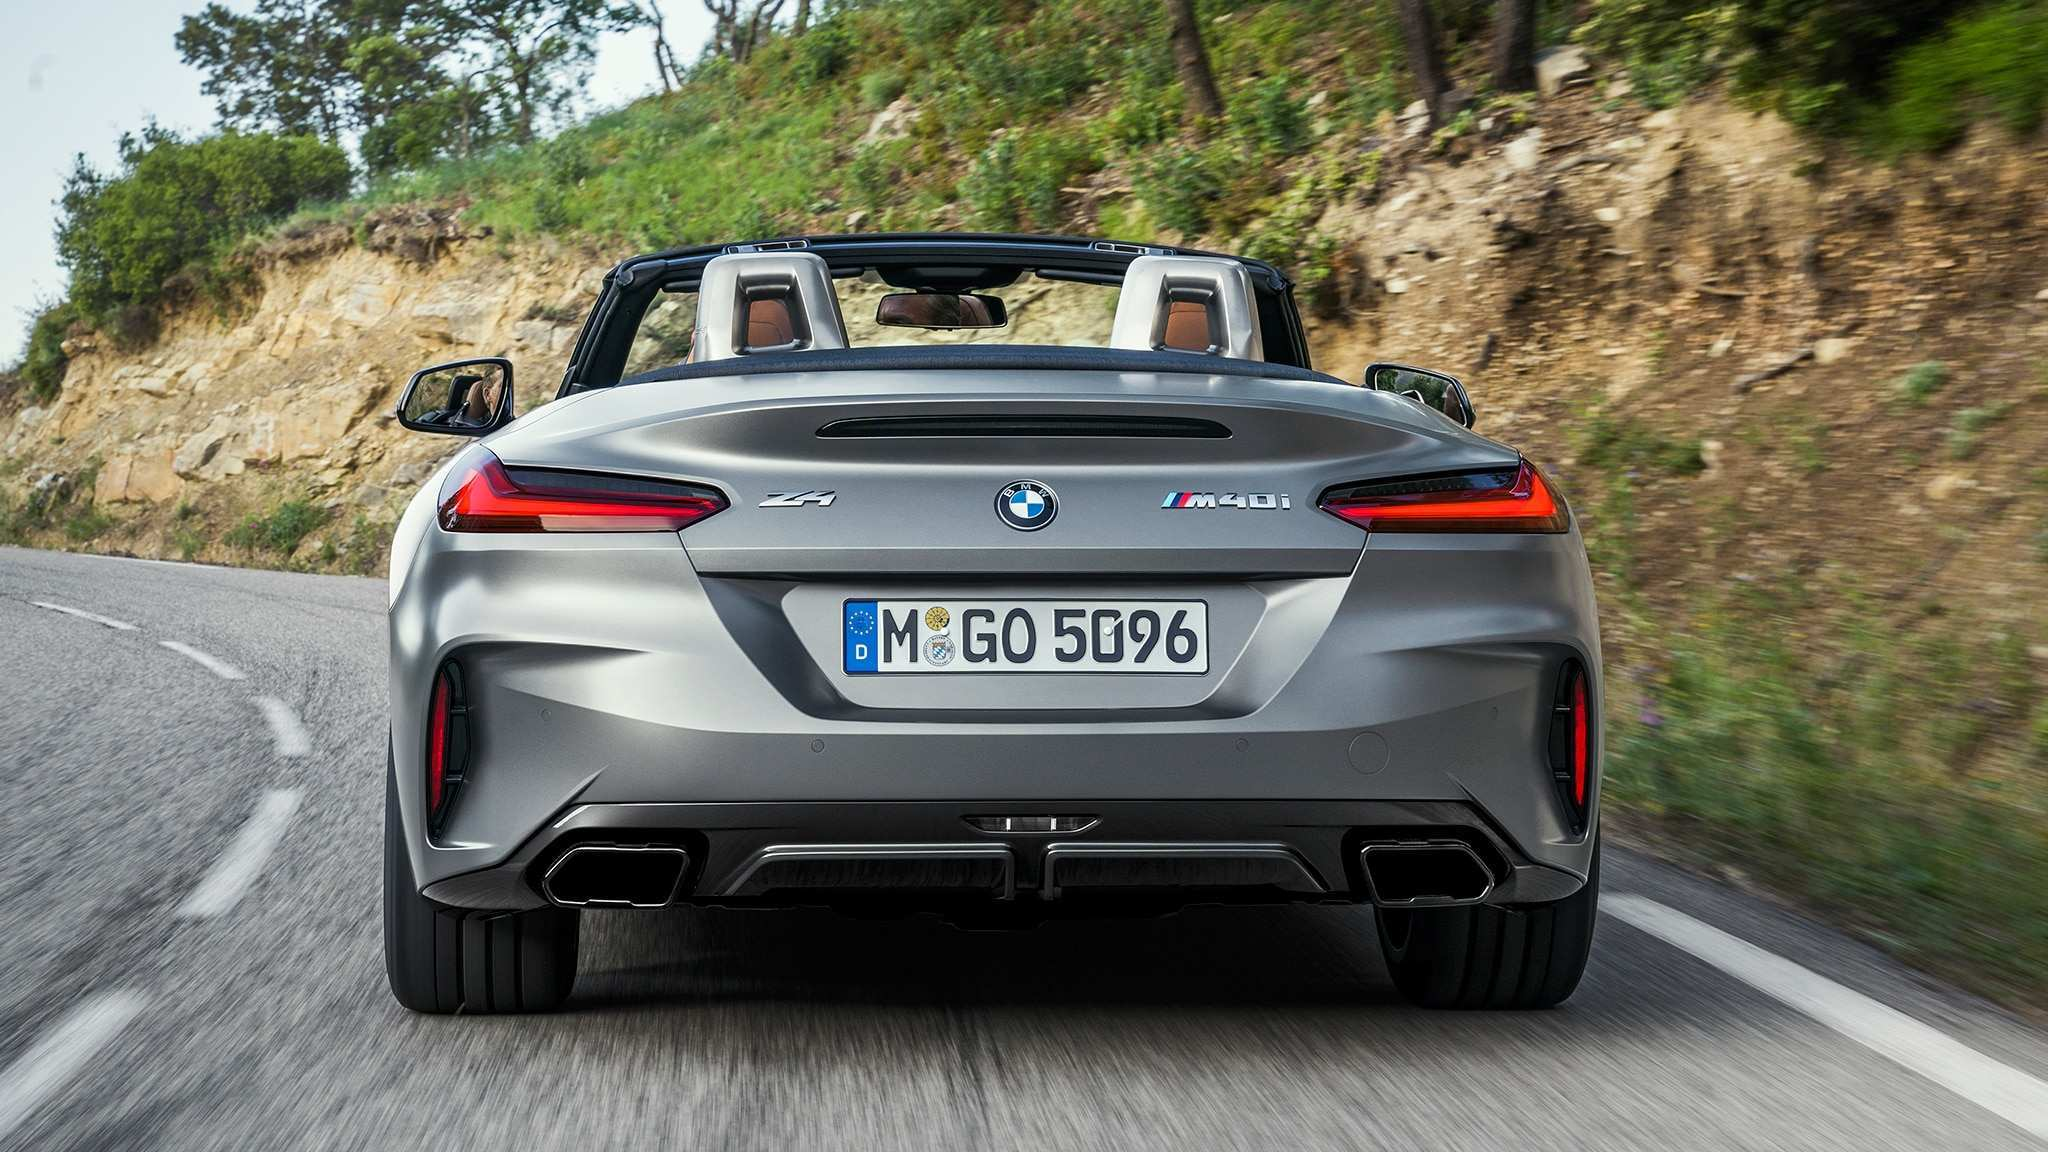 73 Great 2020 BMW Z4 Roadster Images for 2020 BMW Z4 Roadster